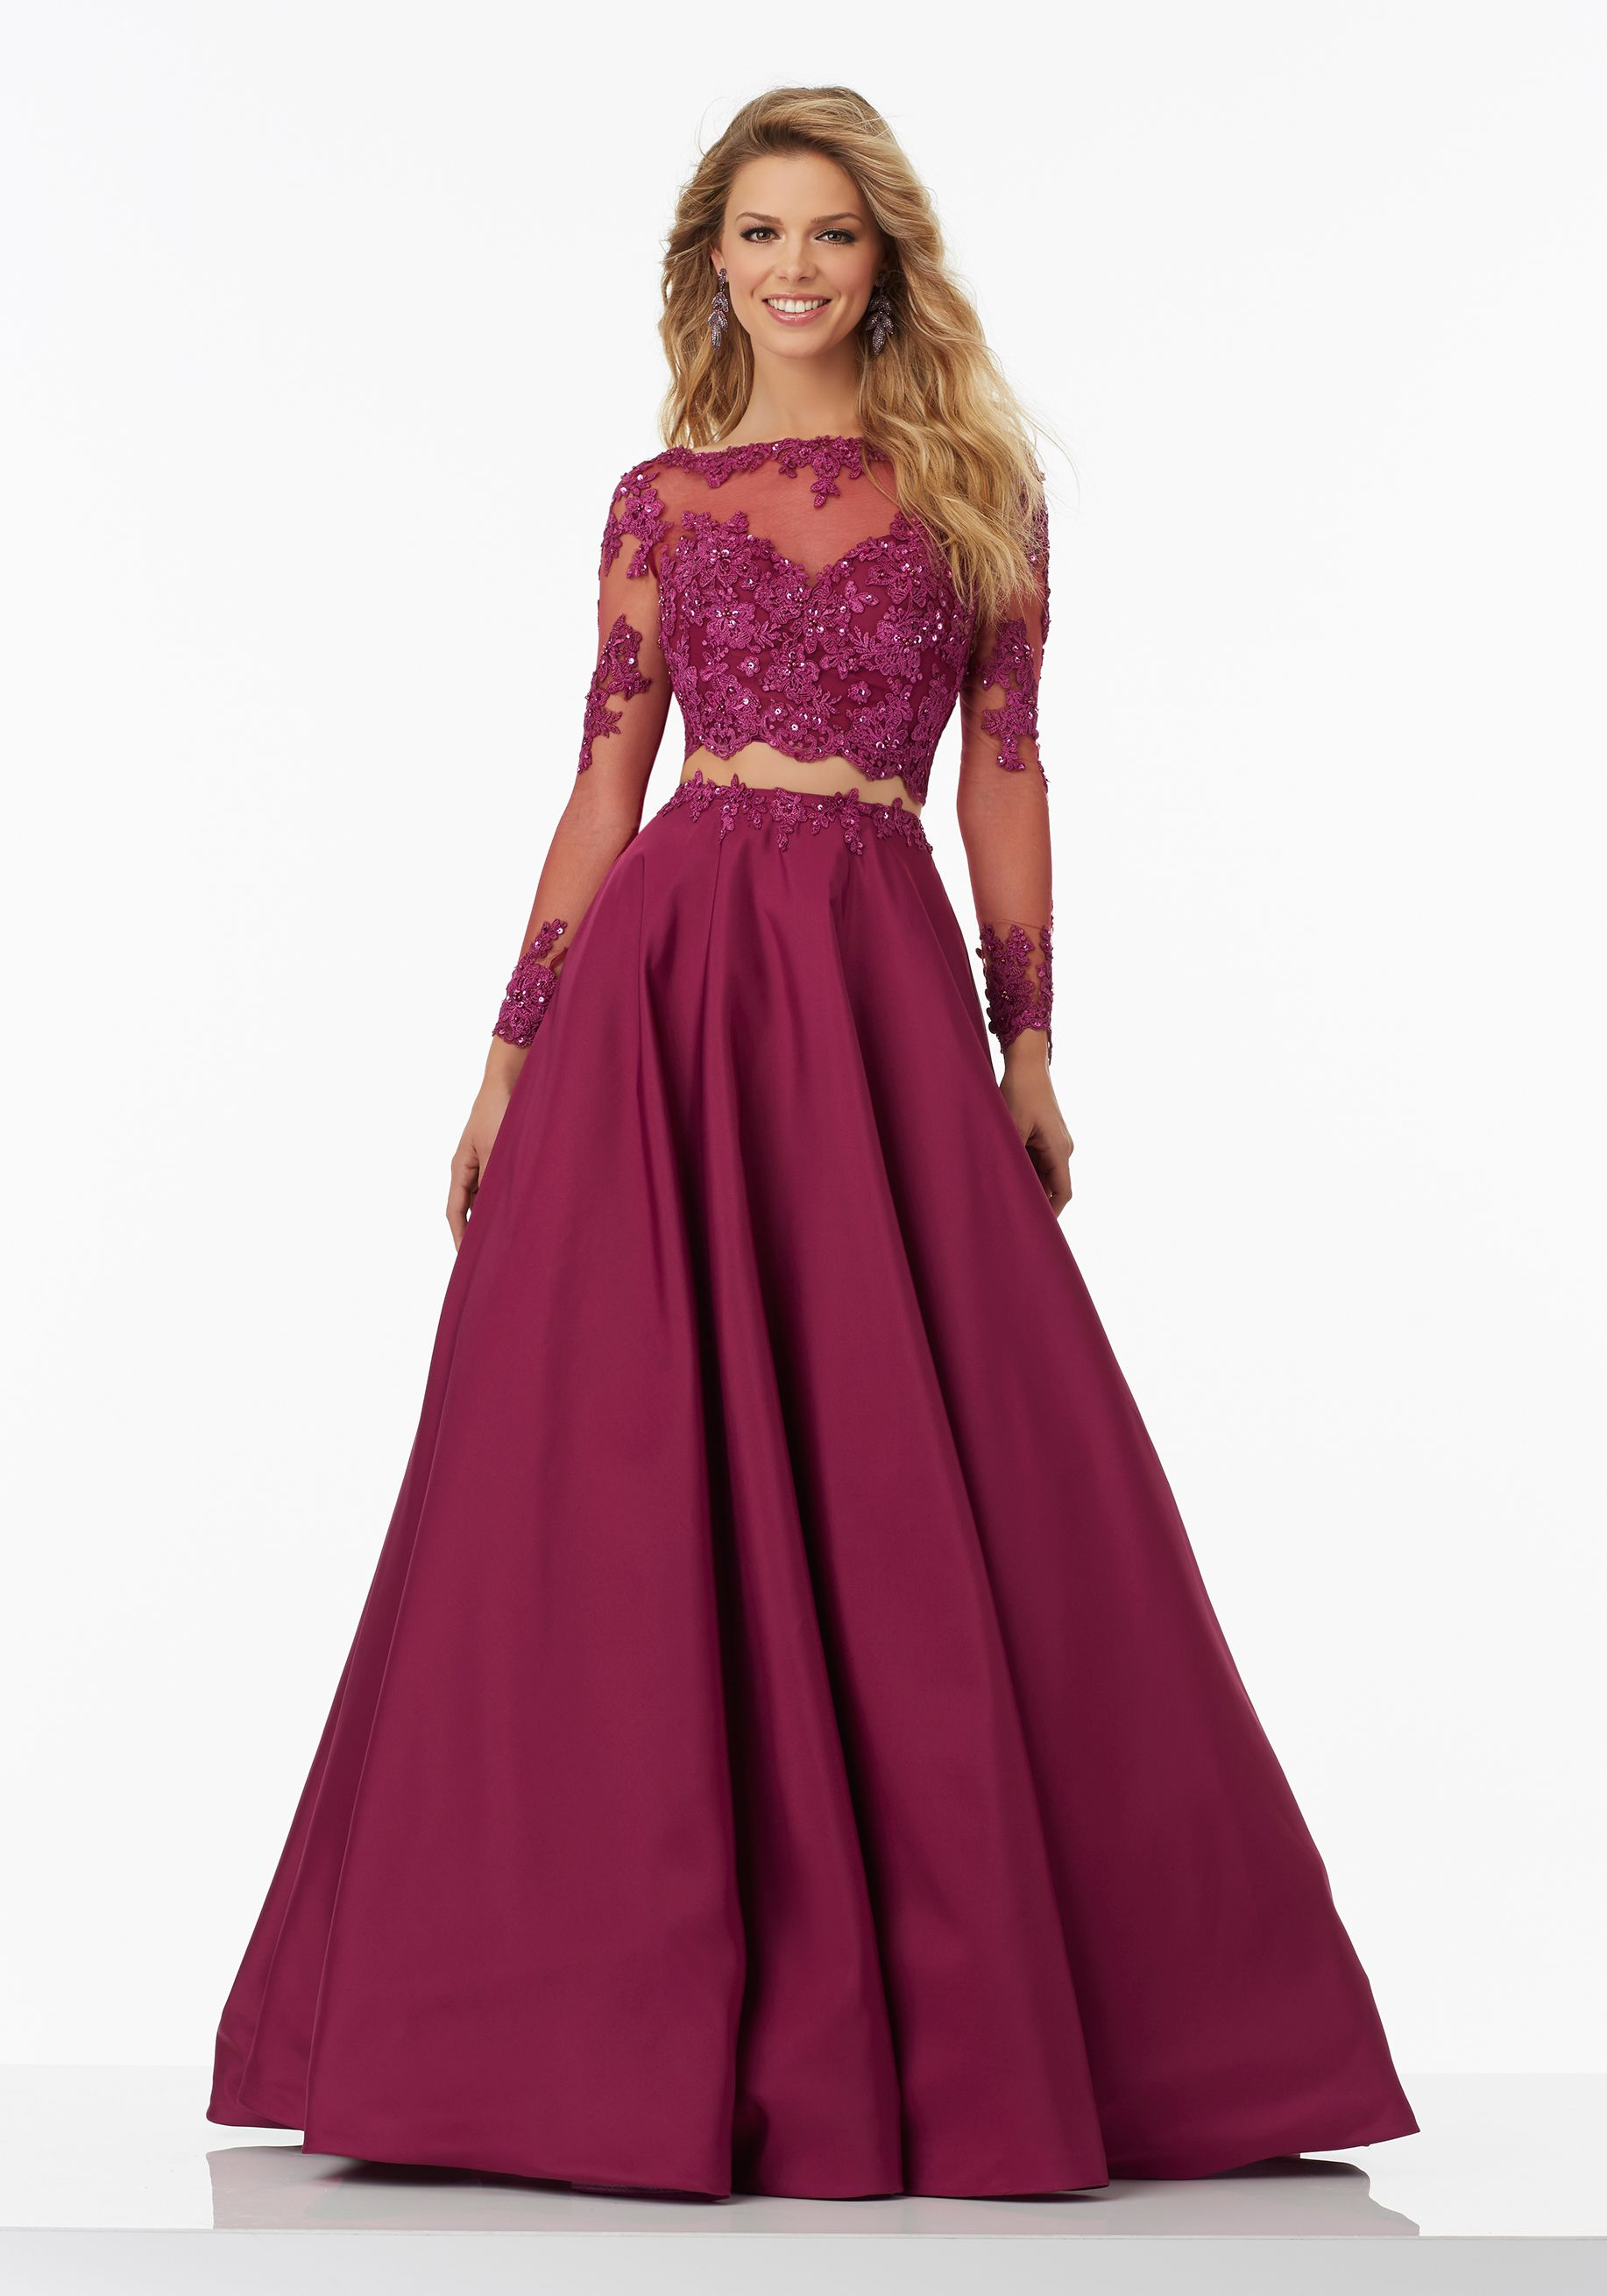 4b6e66f3aa0 Mori Lee 2 Piece Prom Dress